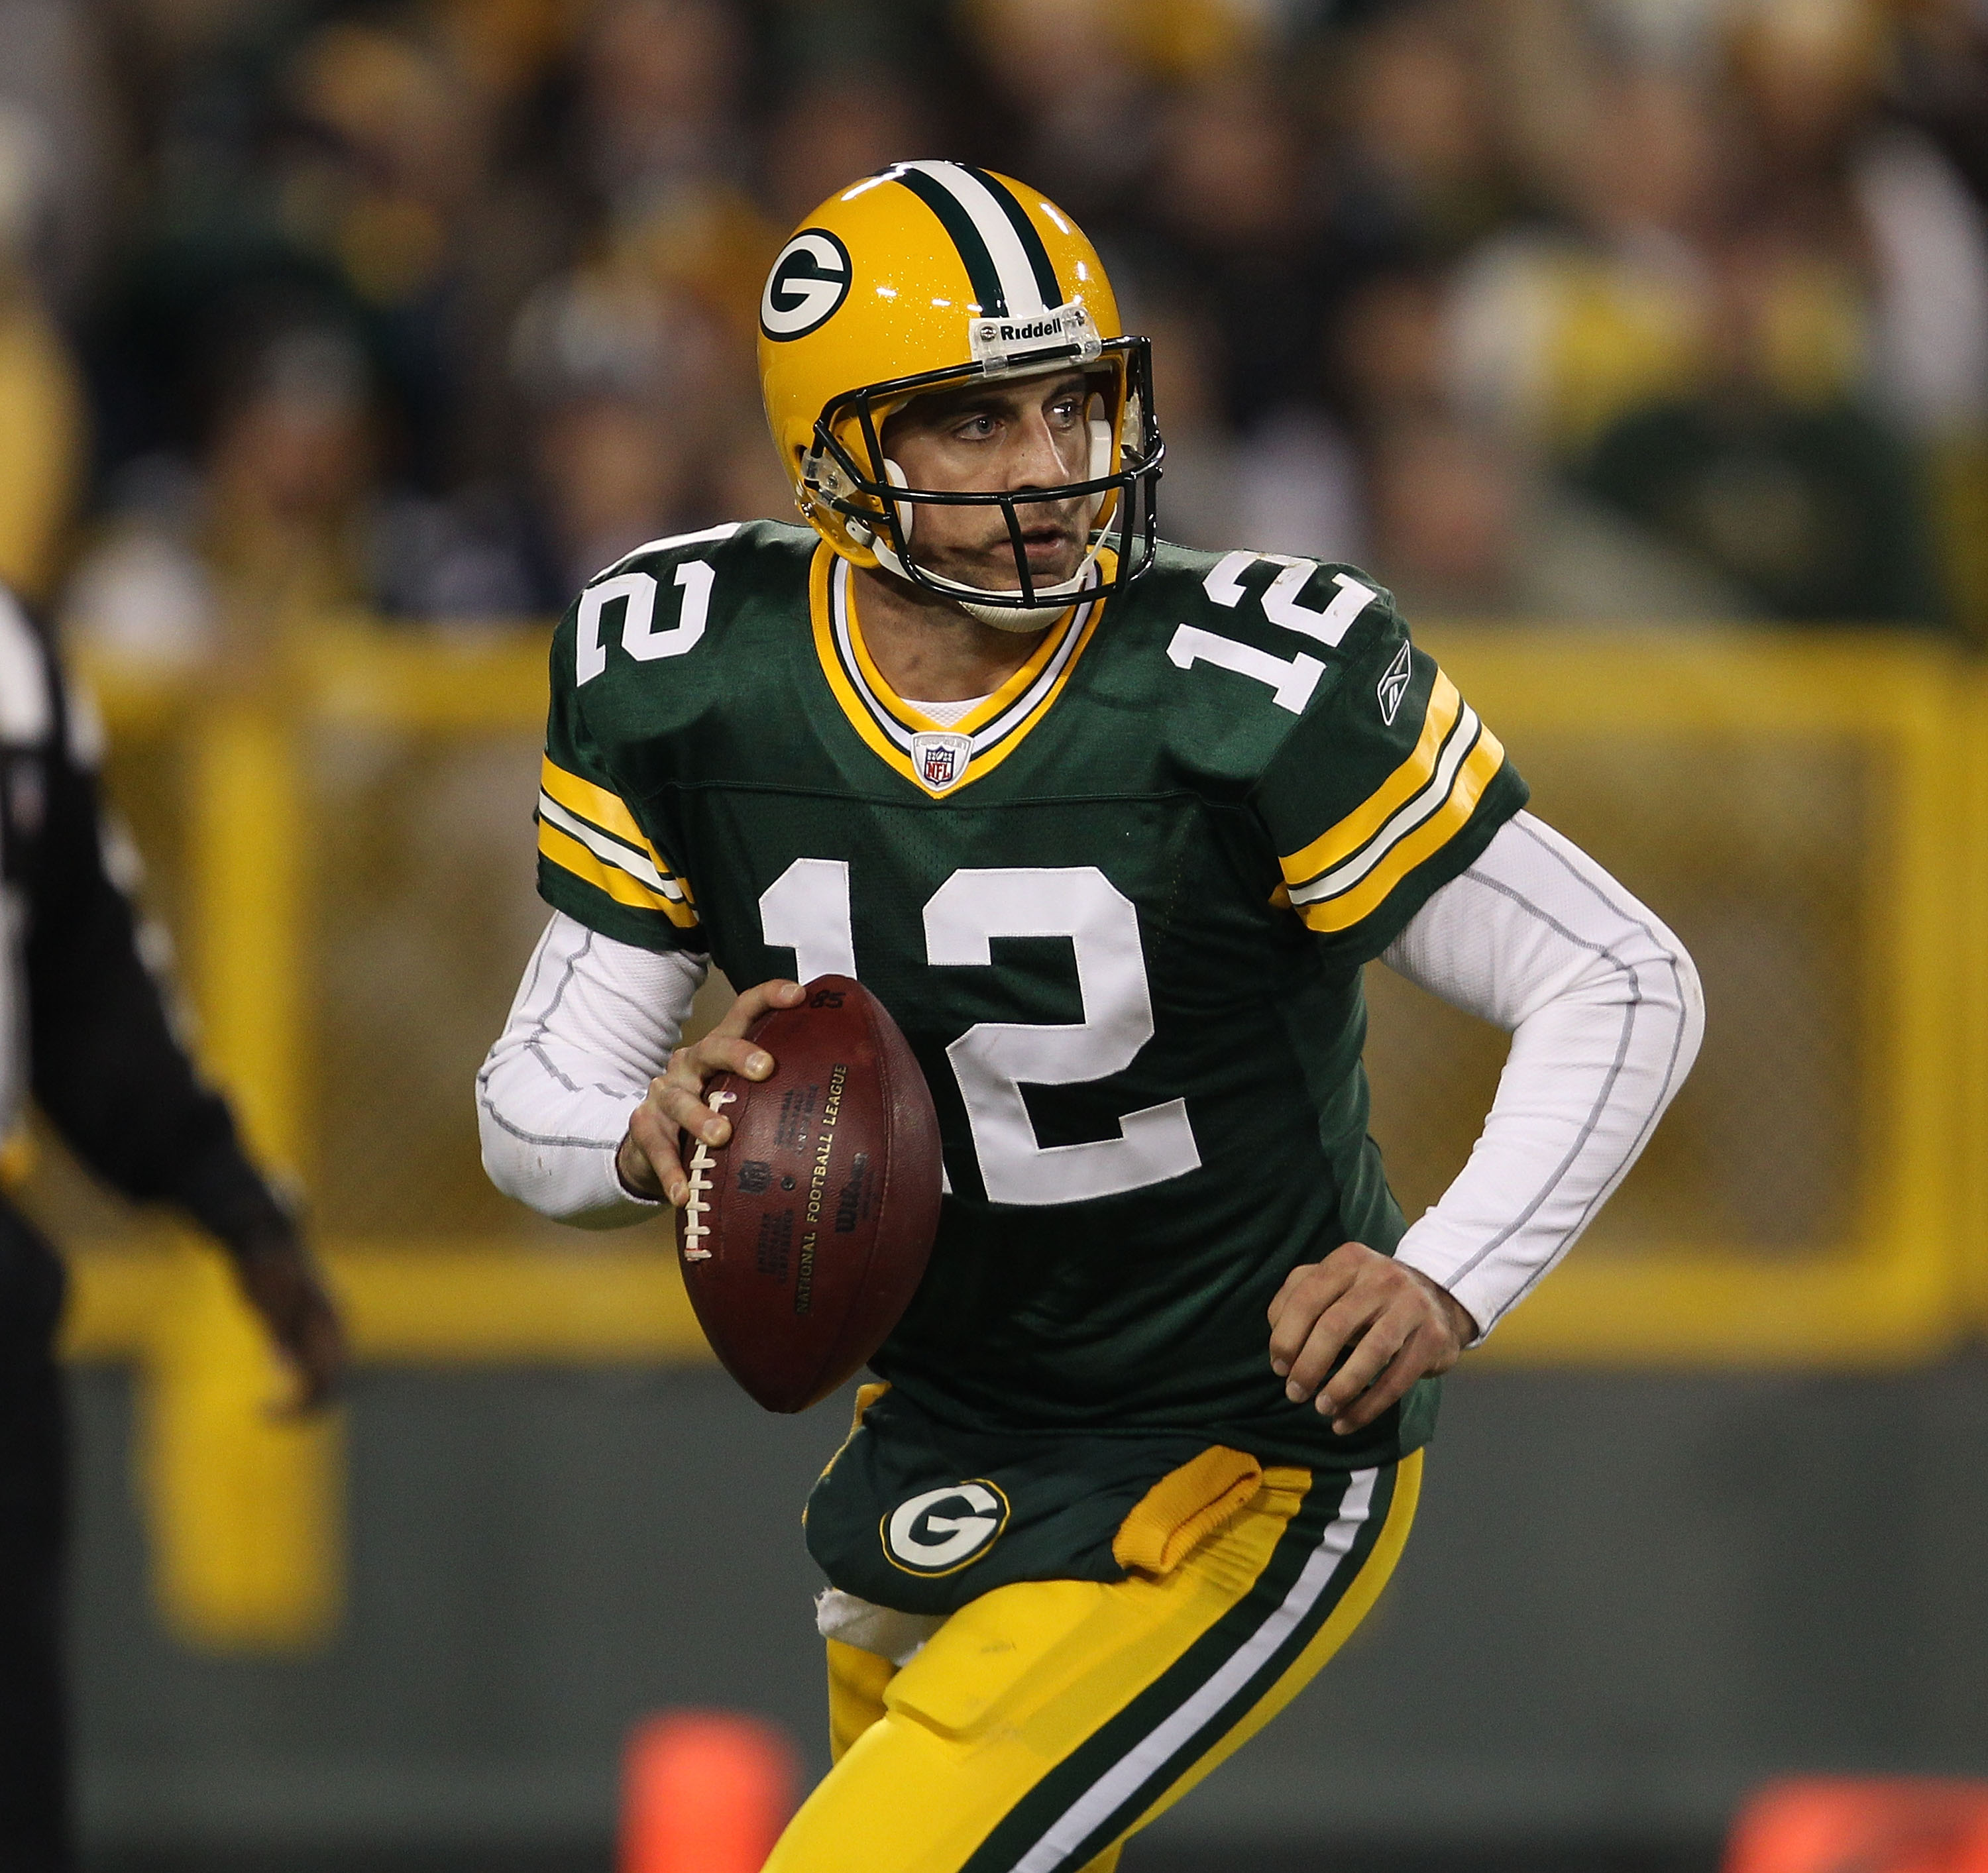 GREEN BAY, WI - NOVEMBER 07: Aaron Rodgers #12 of the Green Bay Packers looks for a receiver against the Dallas Cowboys at Lambeau Field on November 7, 2010 in Green Bay, Wisconsin. The Packers defeated the Cowboys 45-7. (Photo by Jonathan Daniel/Getty Im